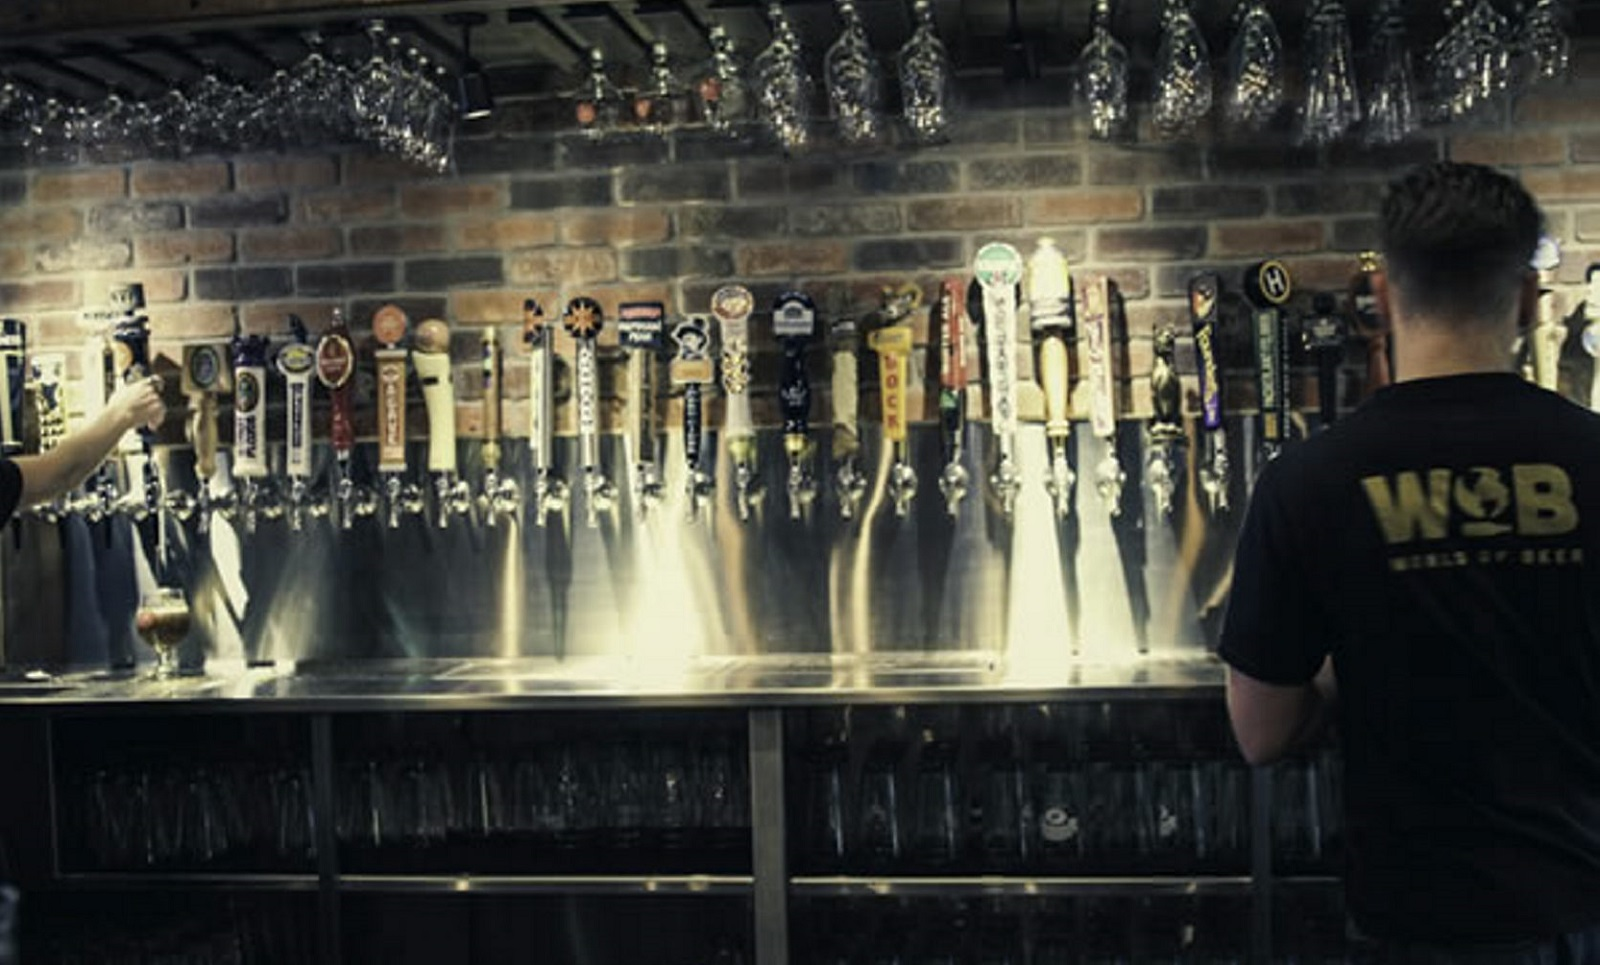 World of Beer in the Galleria Mall plays host to a beer event.